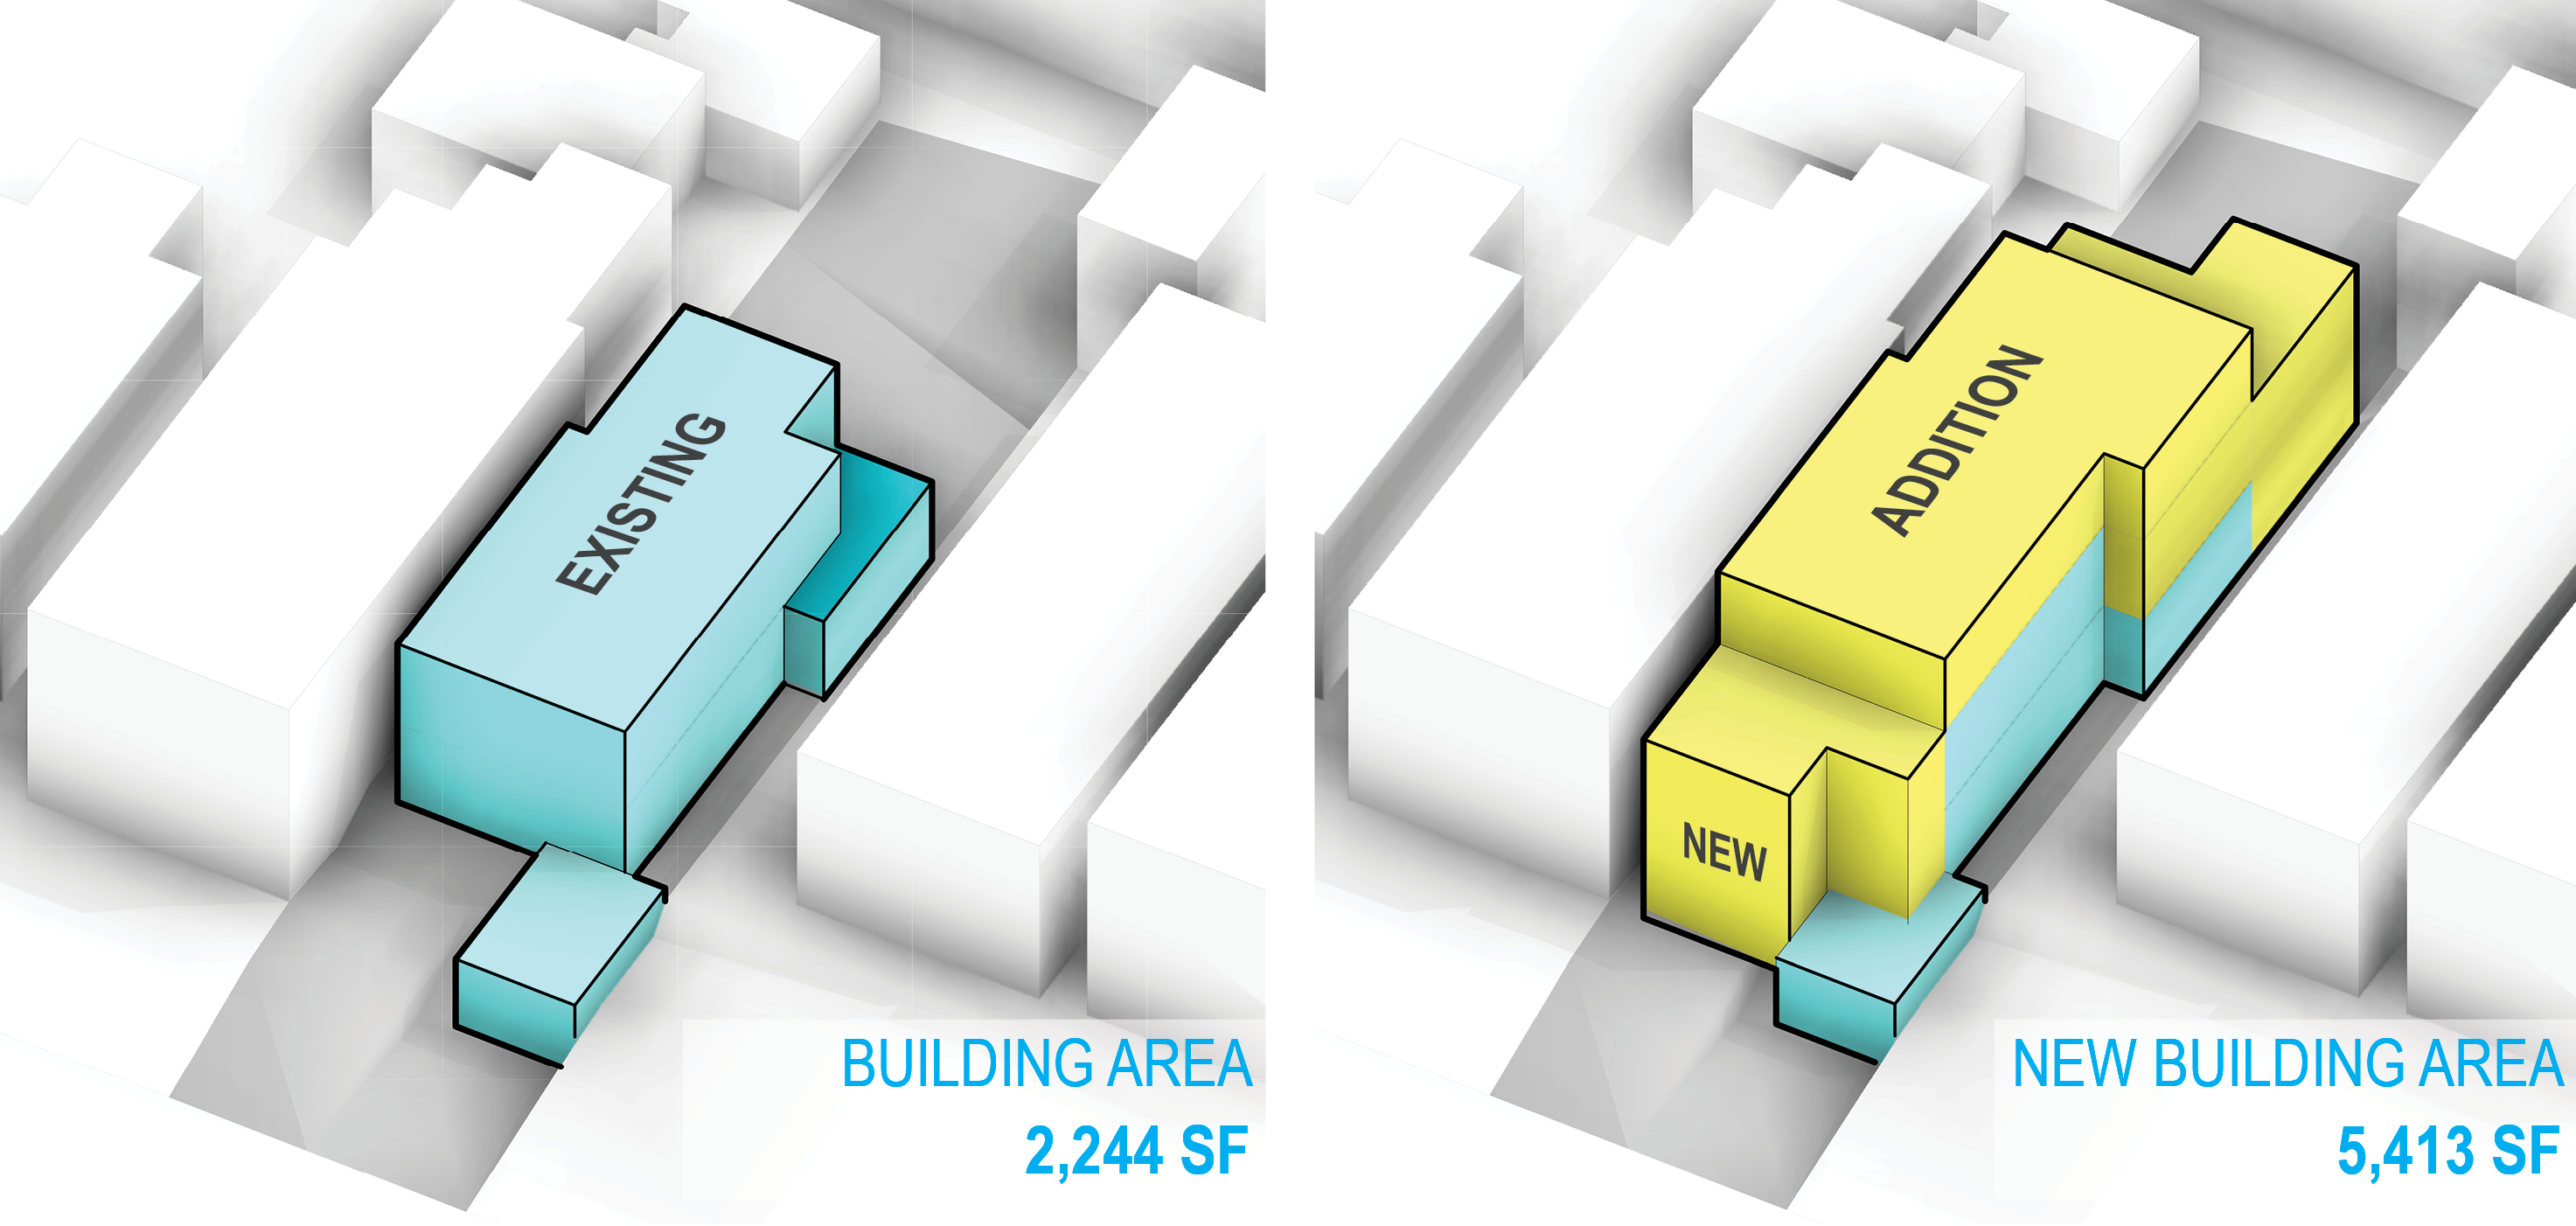 CityStructure - the best tool for Real Estate Expansion Opportunity